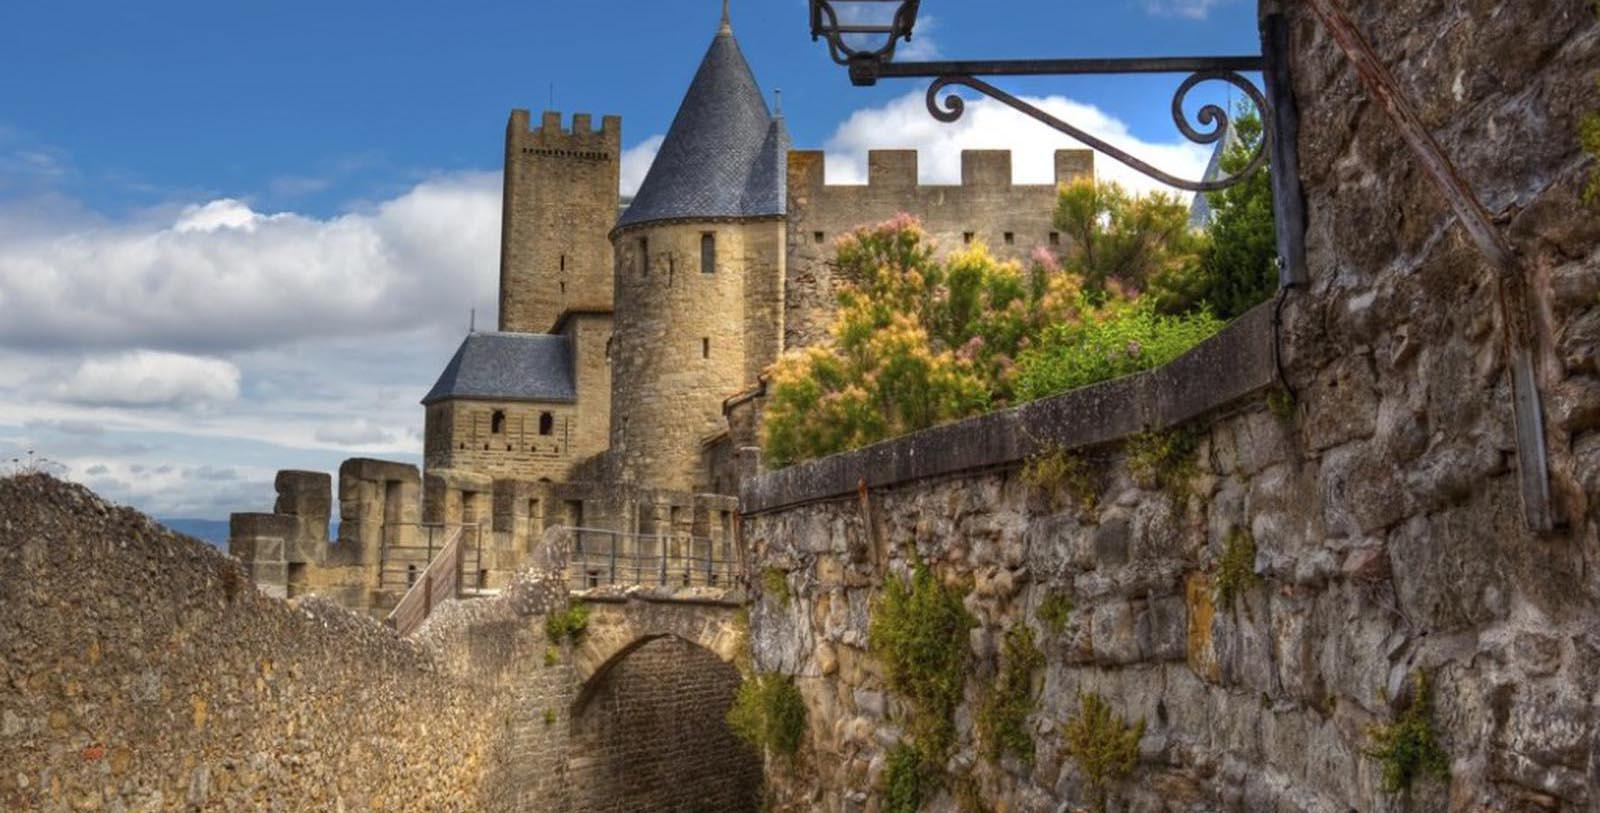 Image of Hotel Exterior Hôtel de la Cité Carcassonne - MGallery by Sofitel, 1909, Member of Historic Hotels Worldwide, in Carcassonne, France, Special Offers, Discounted Rates, Families, Romantic Escape, Honeymoons, Anniversaries, Reunions